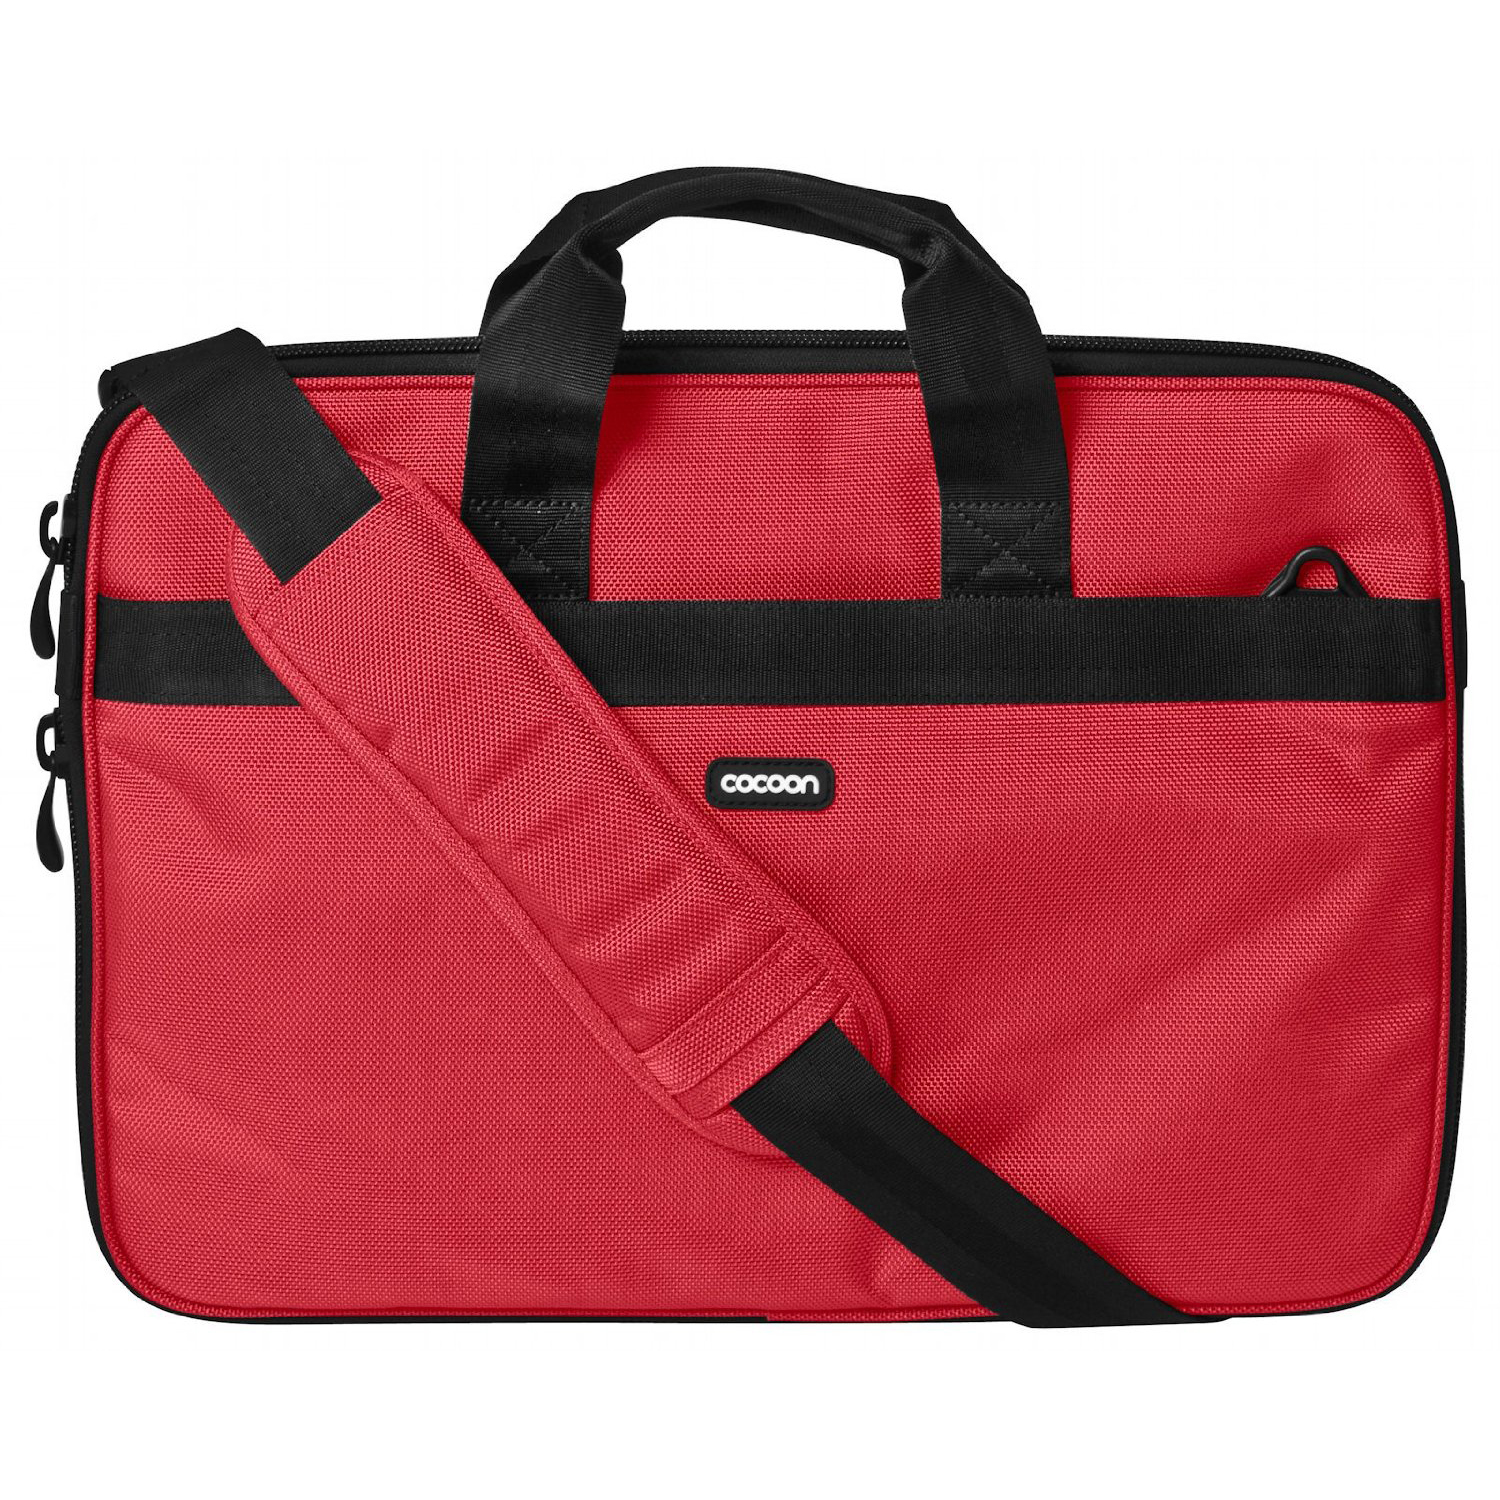 "Cocoon CLB409 15.6"" Ballistic Nylon Laptop Case Bag w/Strap & Grid-It System-Red"